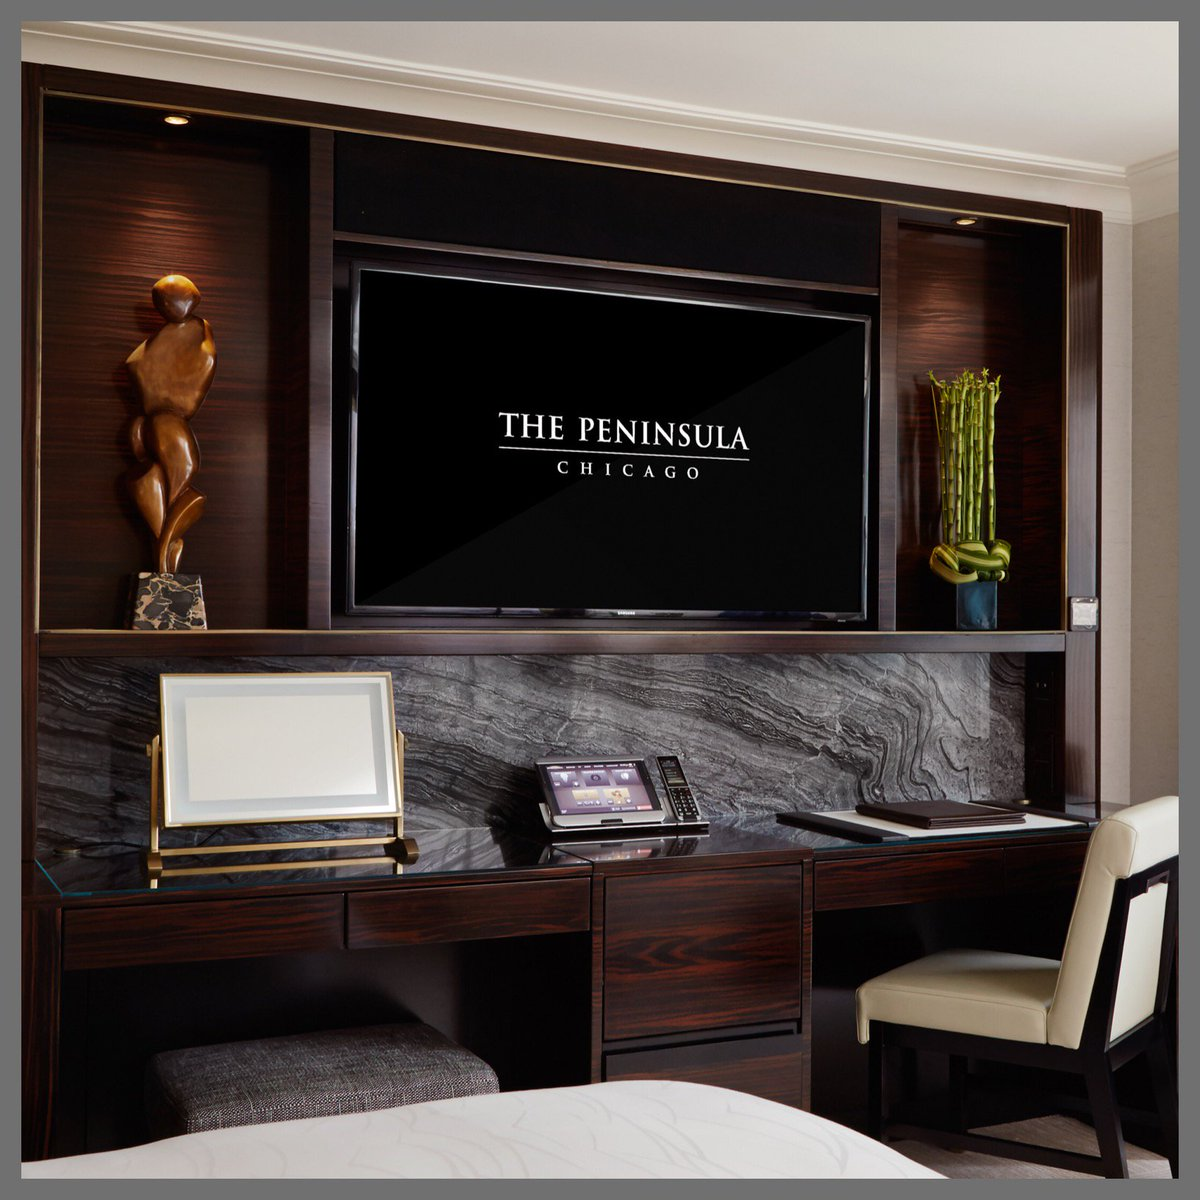 This week we're featuring the Executive Desk in our newly renovated guest rooms and suites. #LuxuryRedefined https://t.co/OJAA9cqbWB